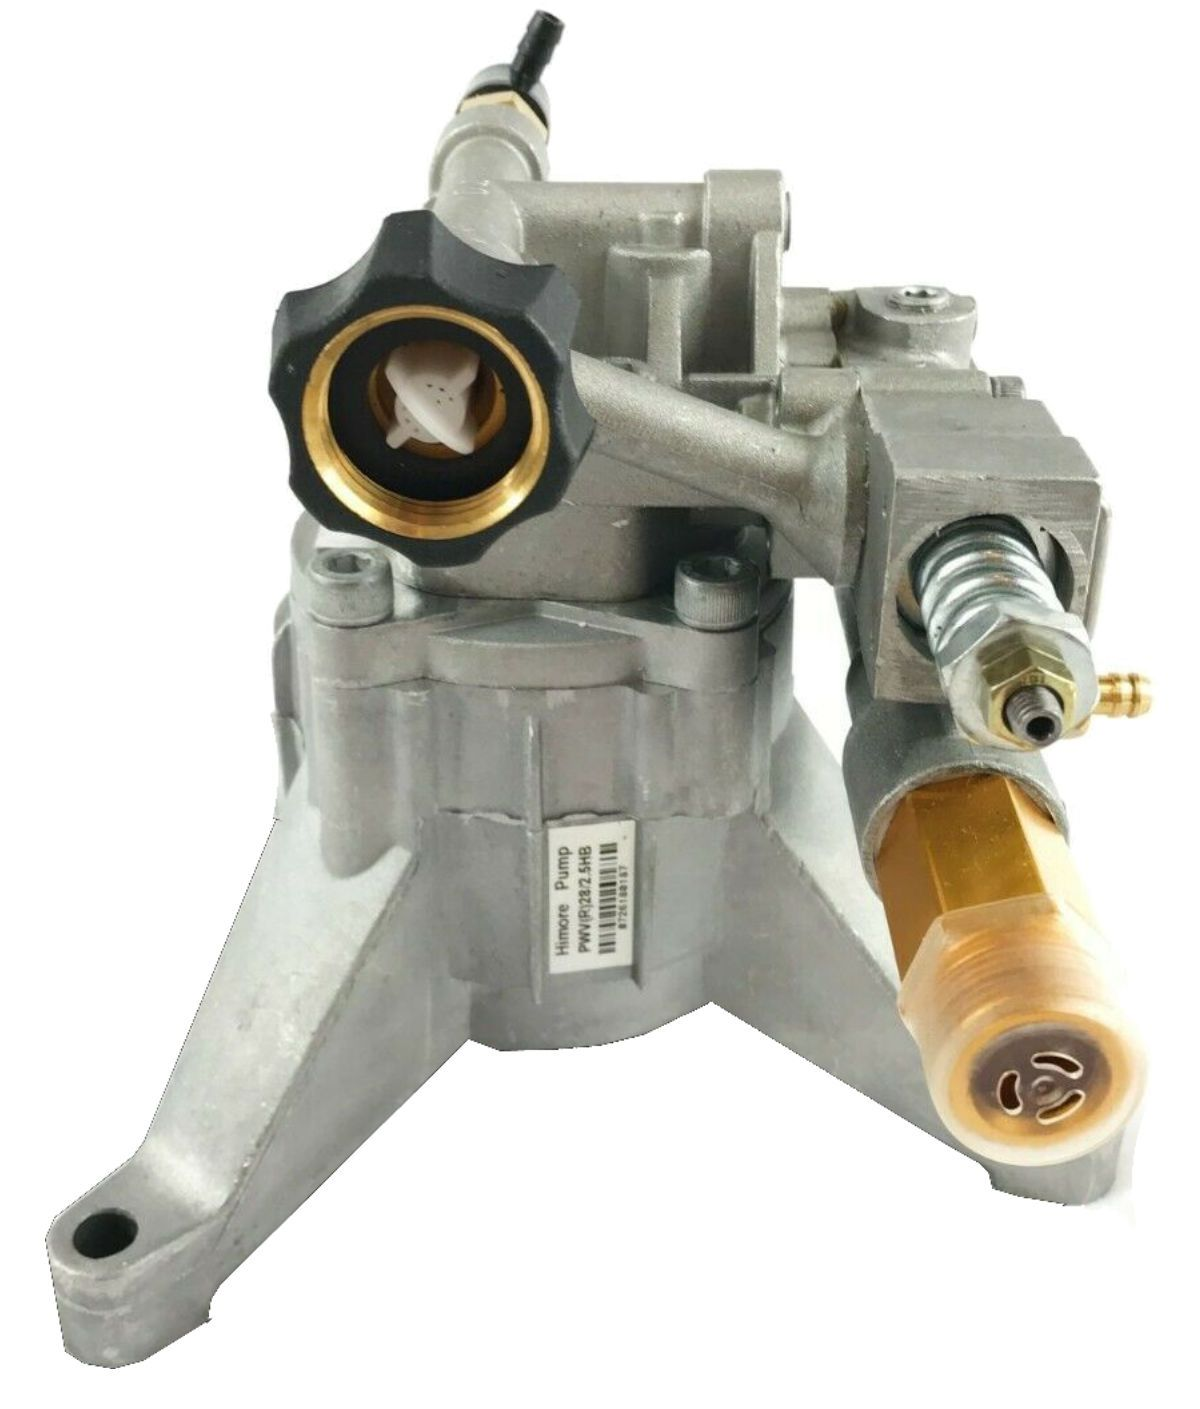 2700 PSI PRESSURE WASHER WATER PUMP Briggs & Stratton 020244-1 020244-2 - AE-Power